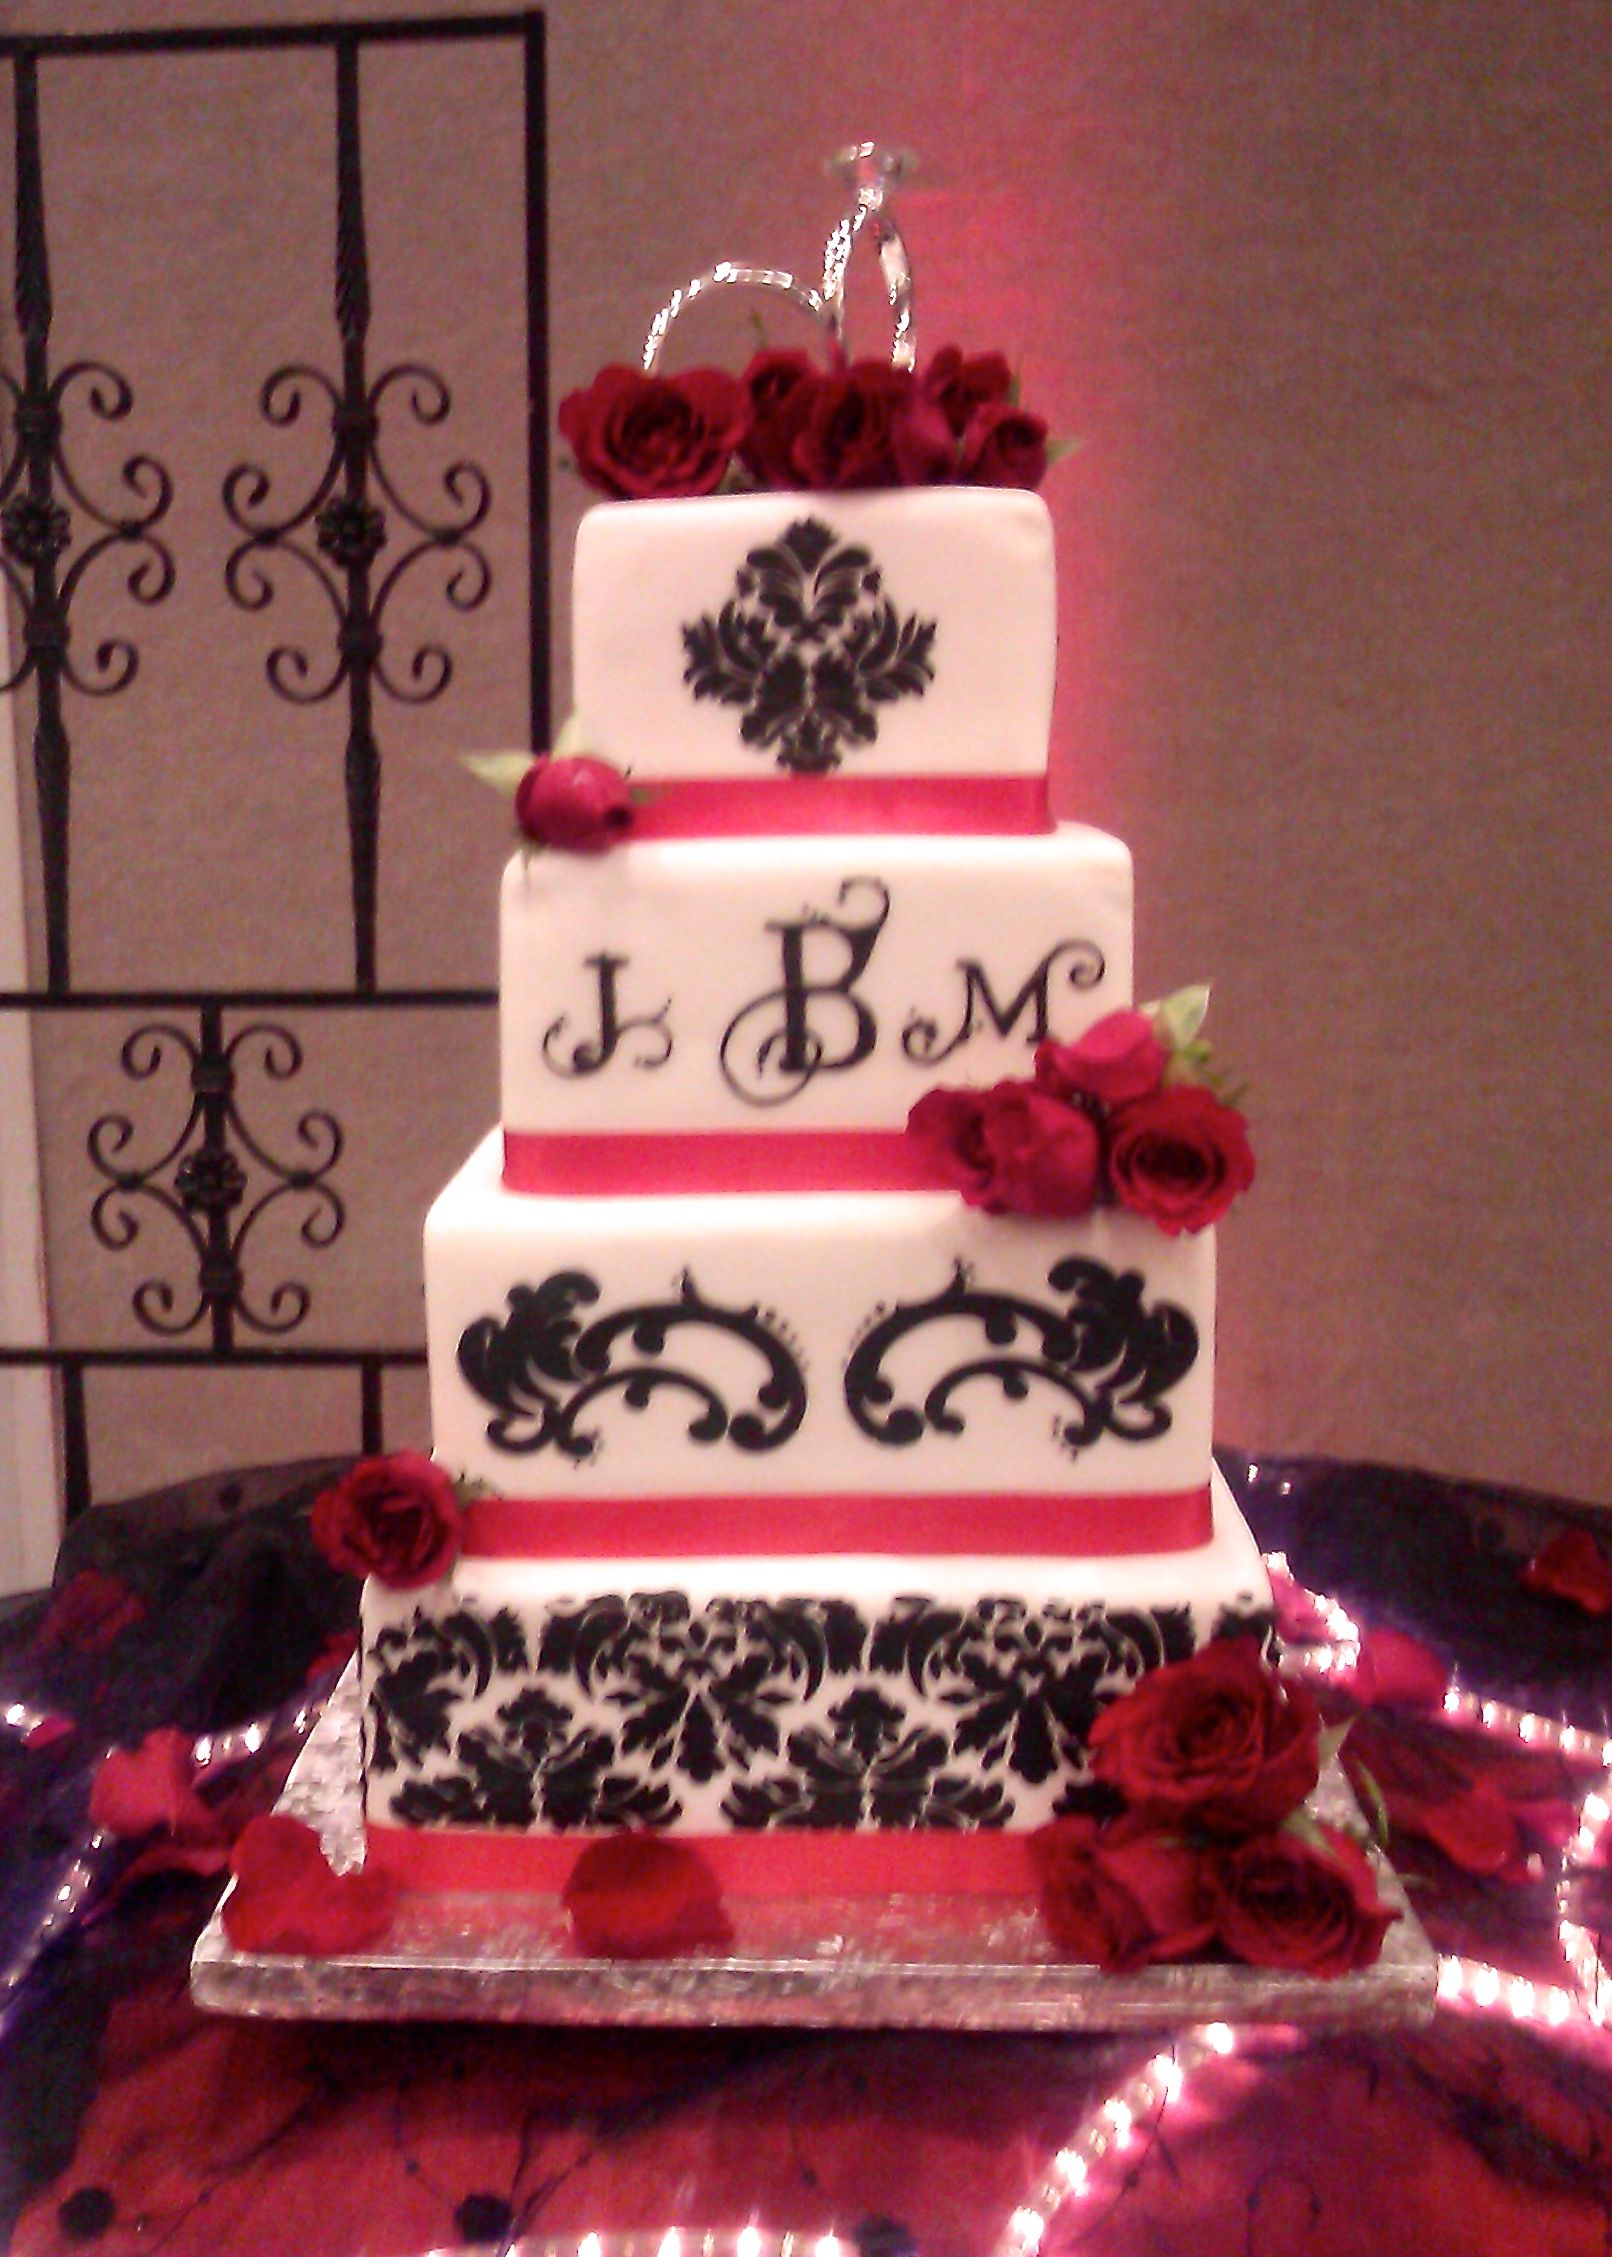 Mexican wedding cake | Mexican wedding cakes ect | Pinterest